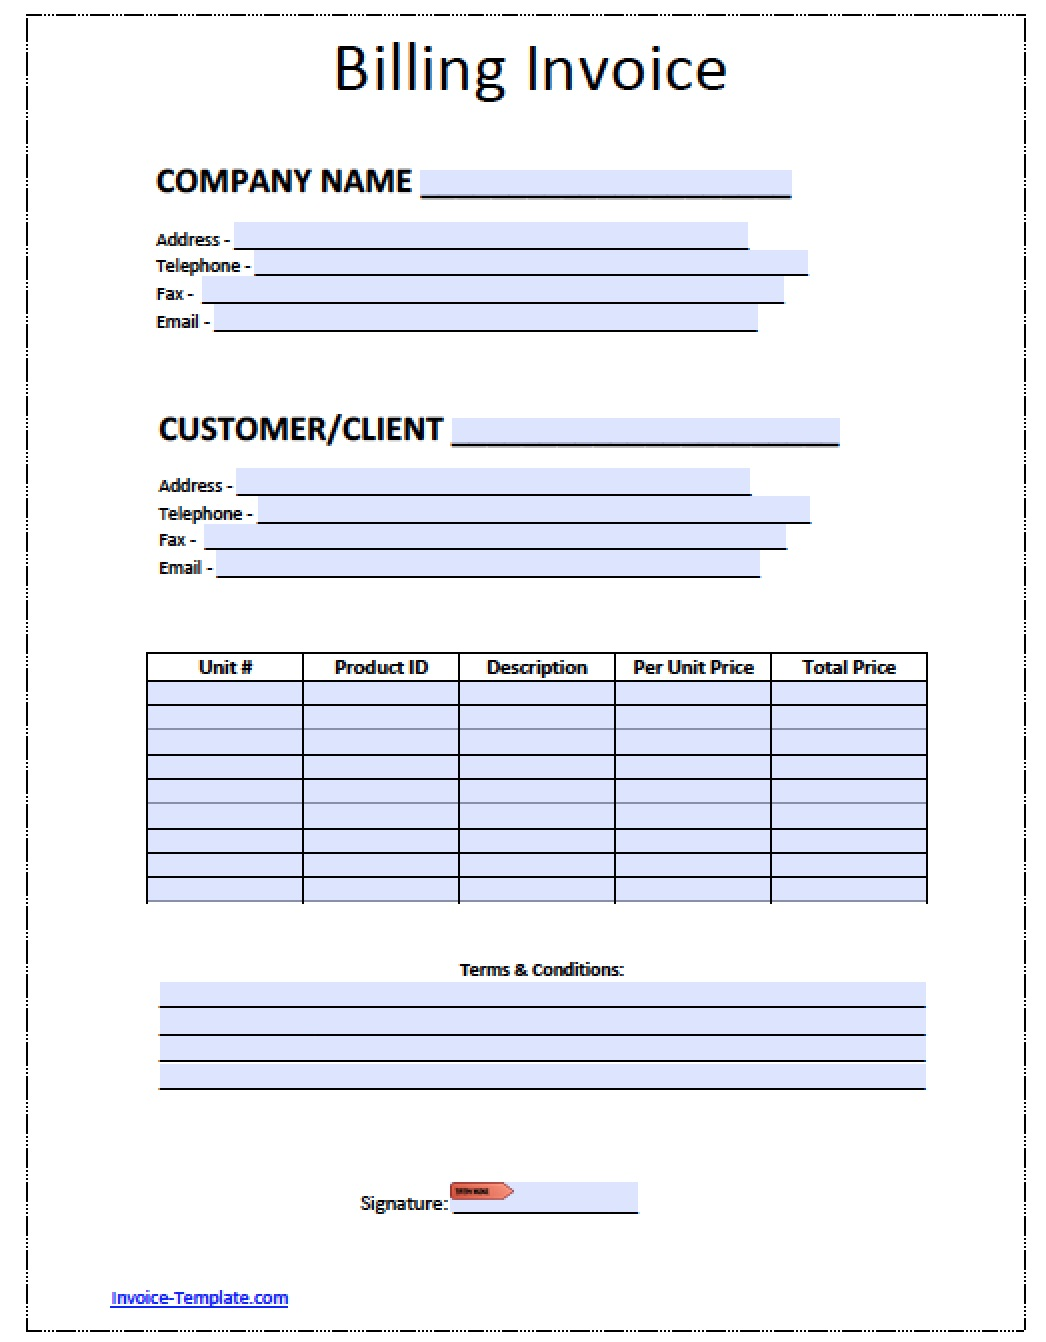 Centralasianshepherdus  Winsome Billing Invoice Invoices Faq U Cloudflare Support Billing  With Engaging Free Billing Invoice Template  Excel  Pdf  Word Doc  Billing With Comely Motorcycle Invoice Also Invoice Online Form In Addition Bmw I Invoice Price And Free Service Invoice Template Download As Well As Open Office Invoice Additionally Program For Invoices From Happytomco With Centralasianshepherdus  Engaging Billing Invoice Invoices Faq U Cloudflare Support Billing  With Comely Free Billing Invoice Template  Excel  Pdf  Word Doc  Billing And Winsome Motorcycle Invoice Also Invoice Online Form In Addition Bmw I Invoice Price From Happytomco